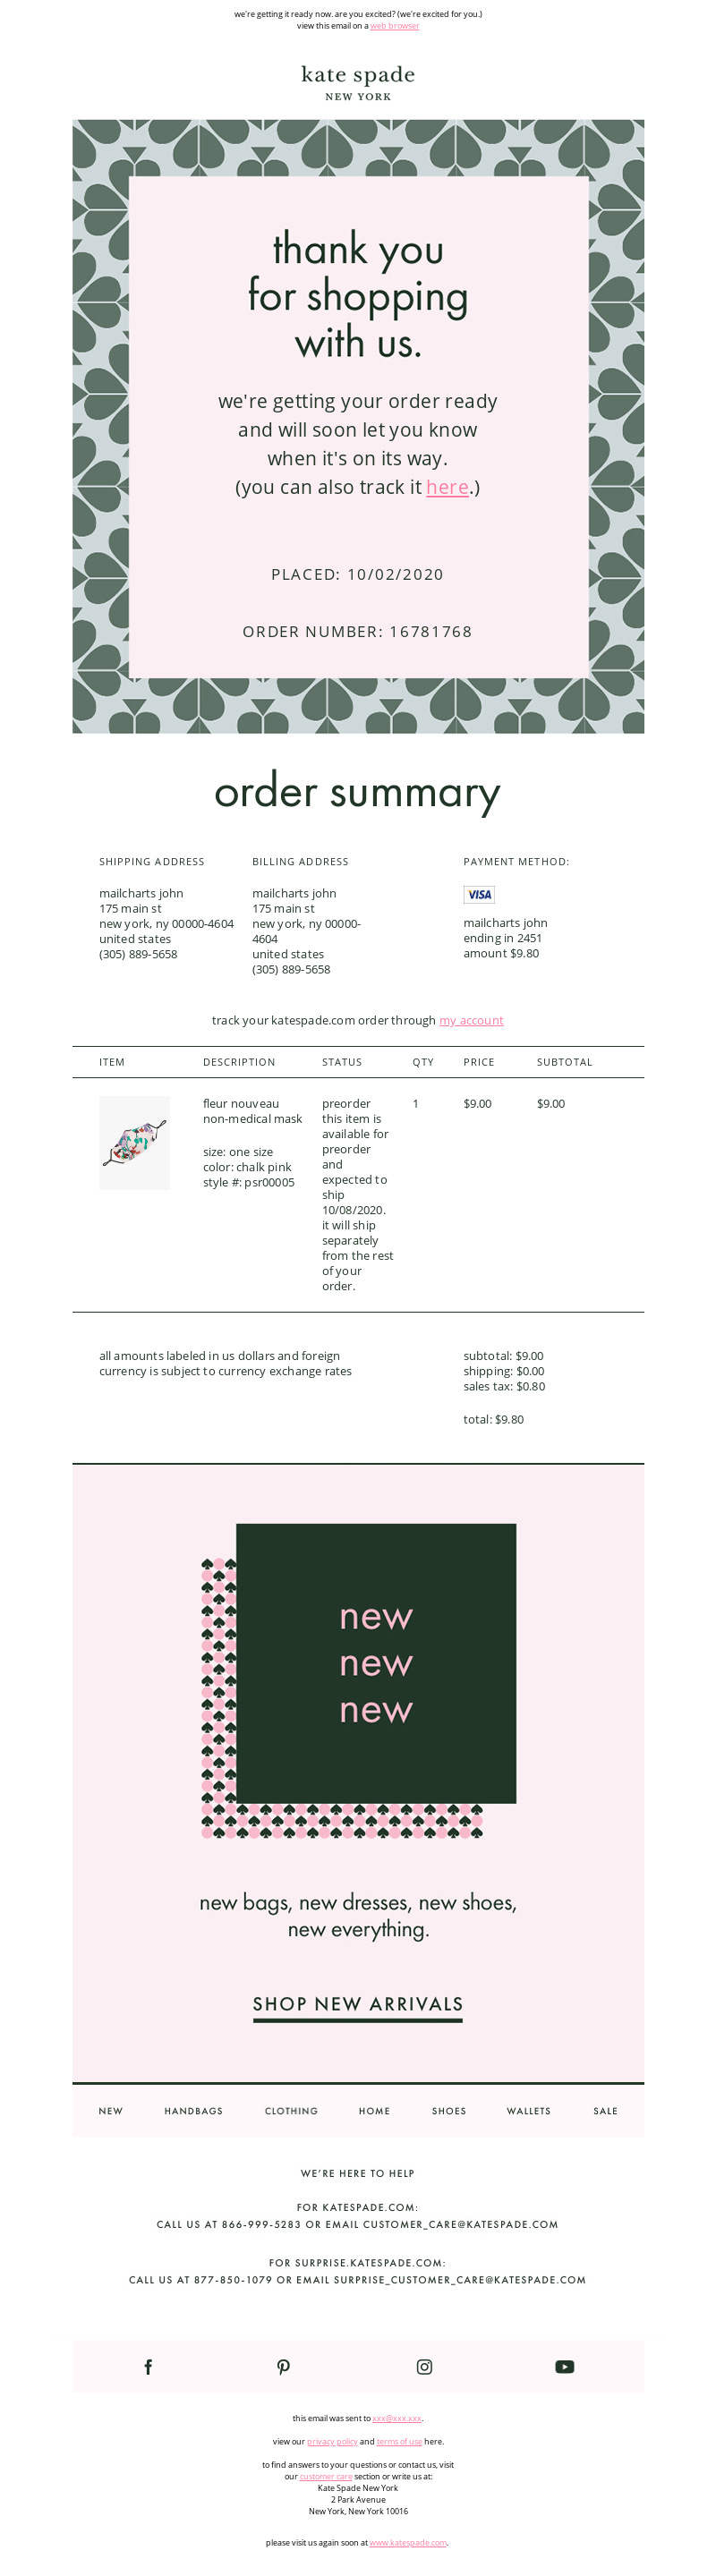 Email From Kate Spade New York Confirmation Email Template Triggered Email Order Confirmation Email